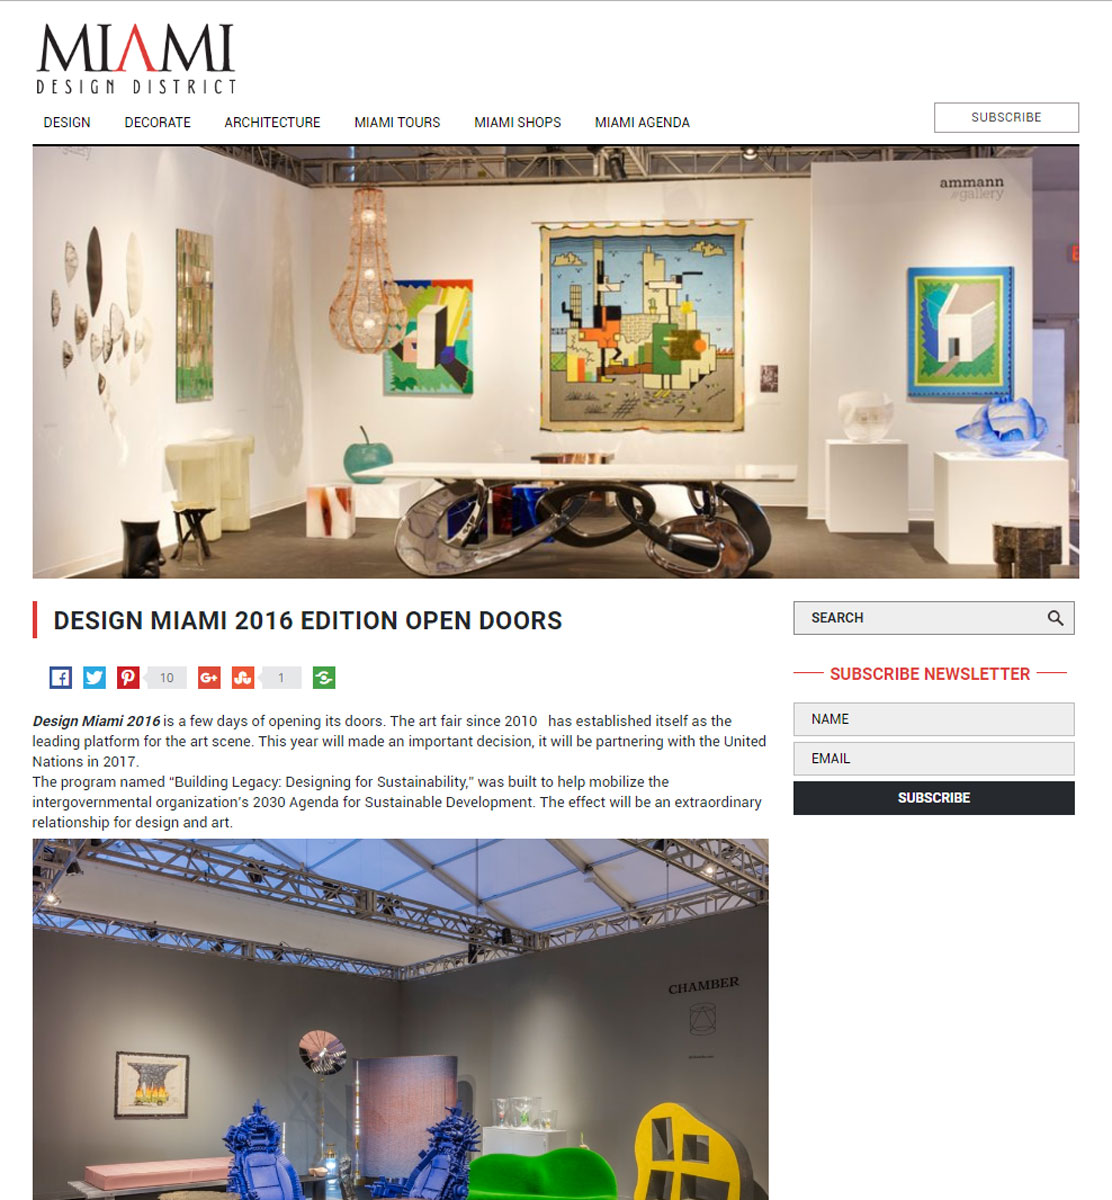 MIAMI DESIGN DISTRICT 12-2016